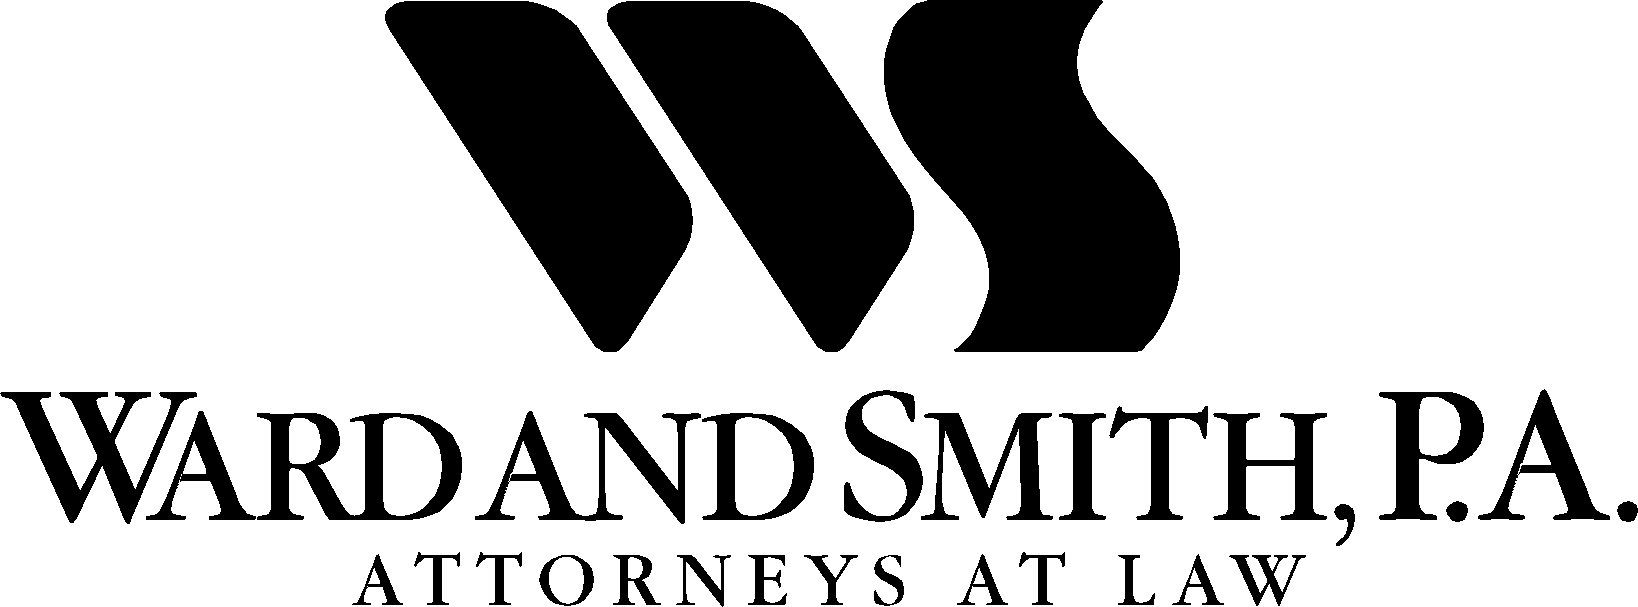 Ward and Smith, P.A. Attorneys at Law